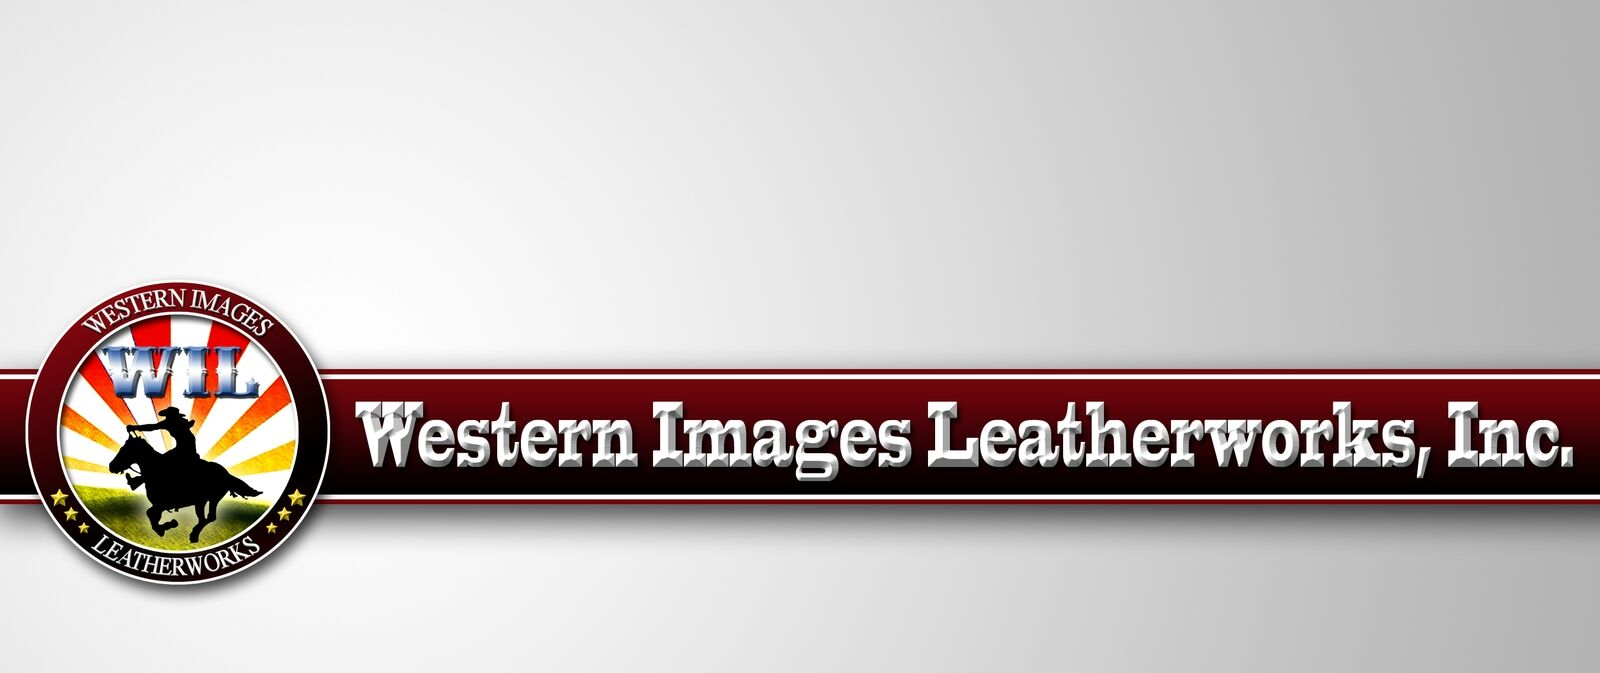 Western Images Leatherworks Inc